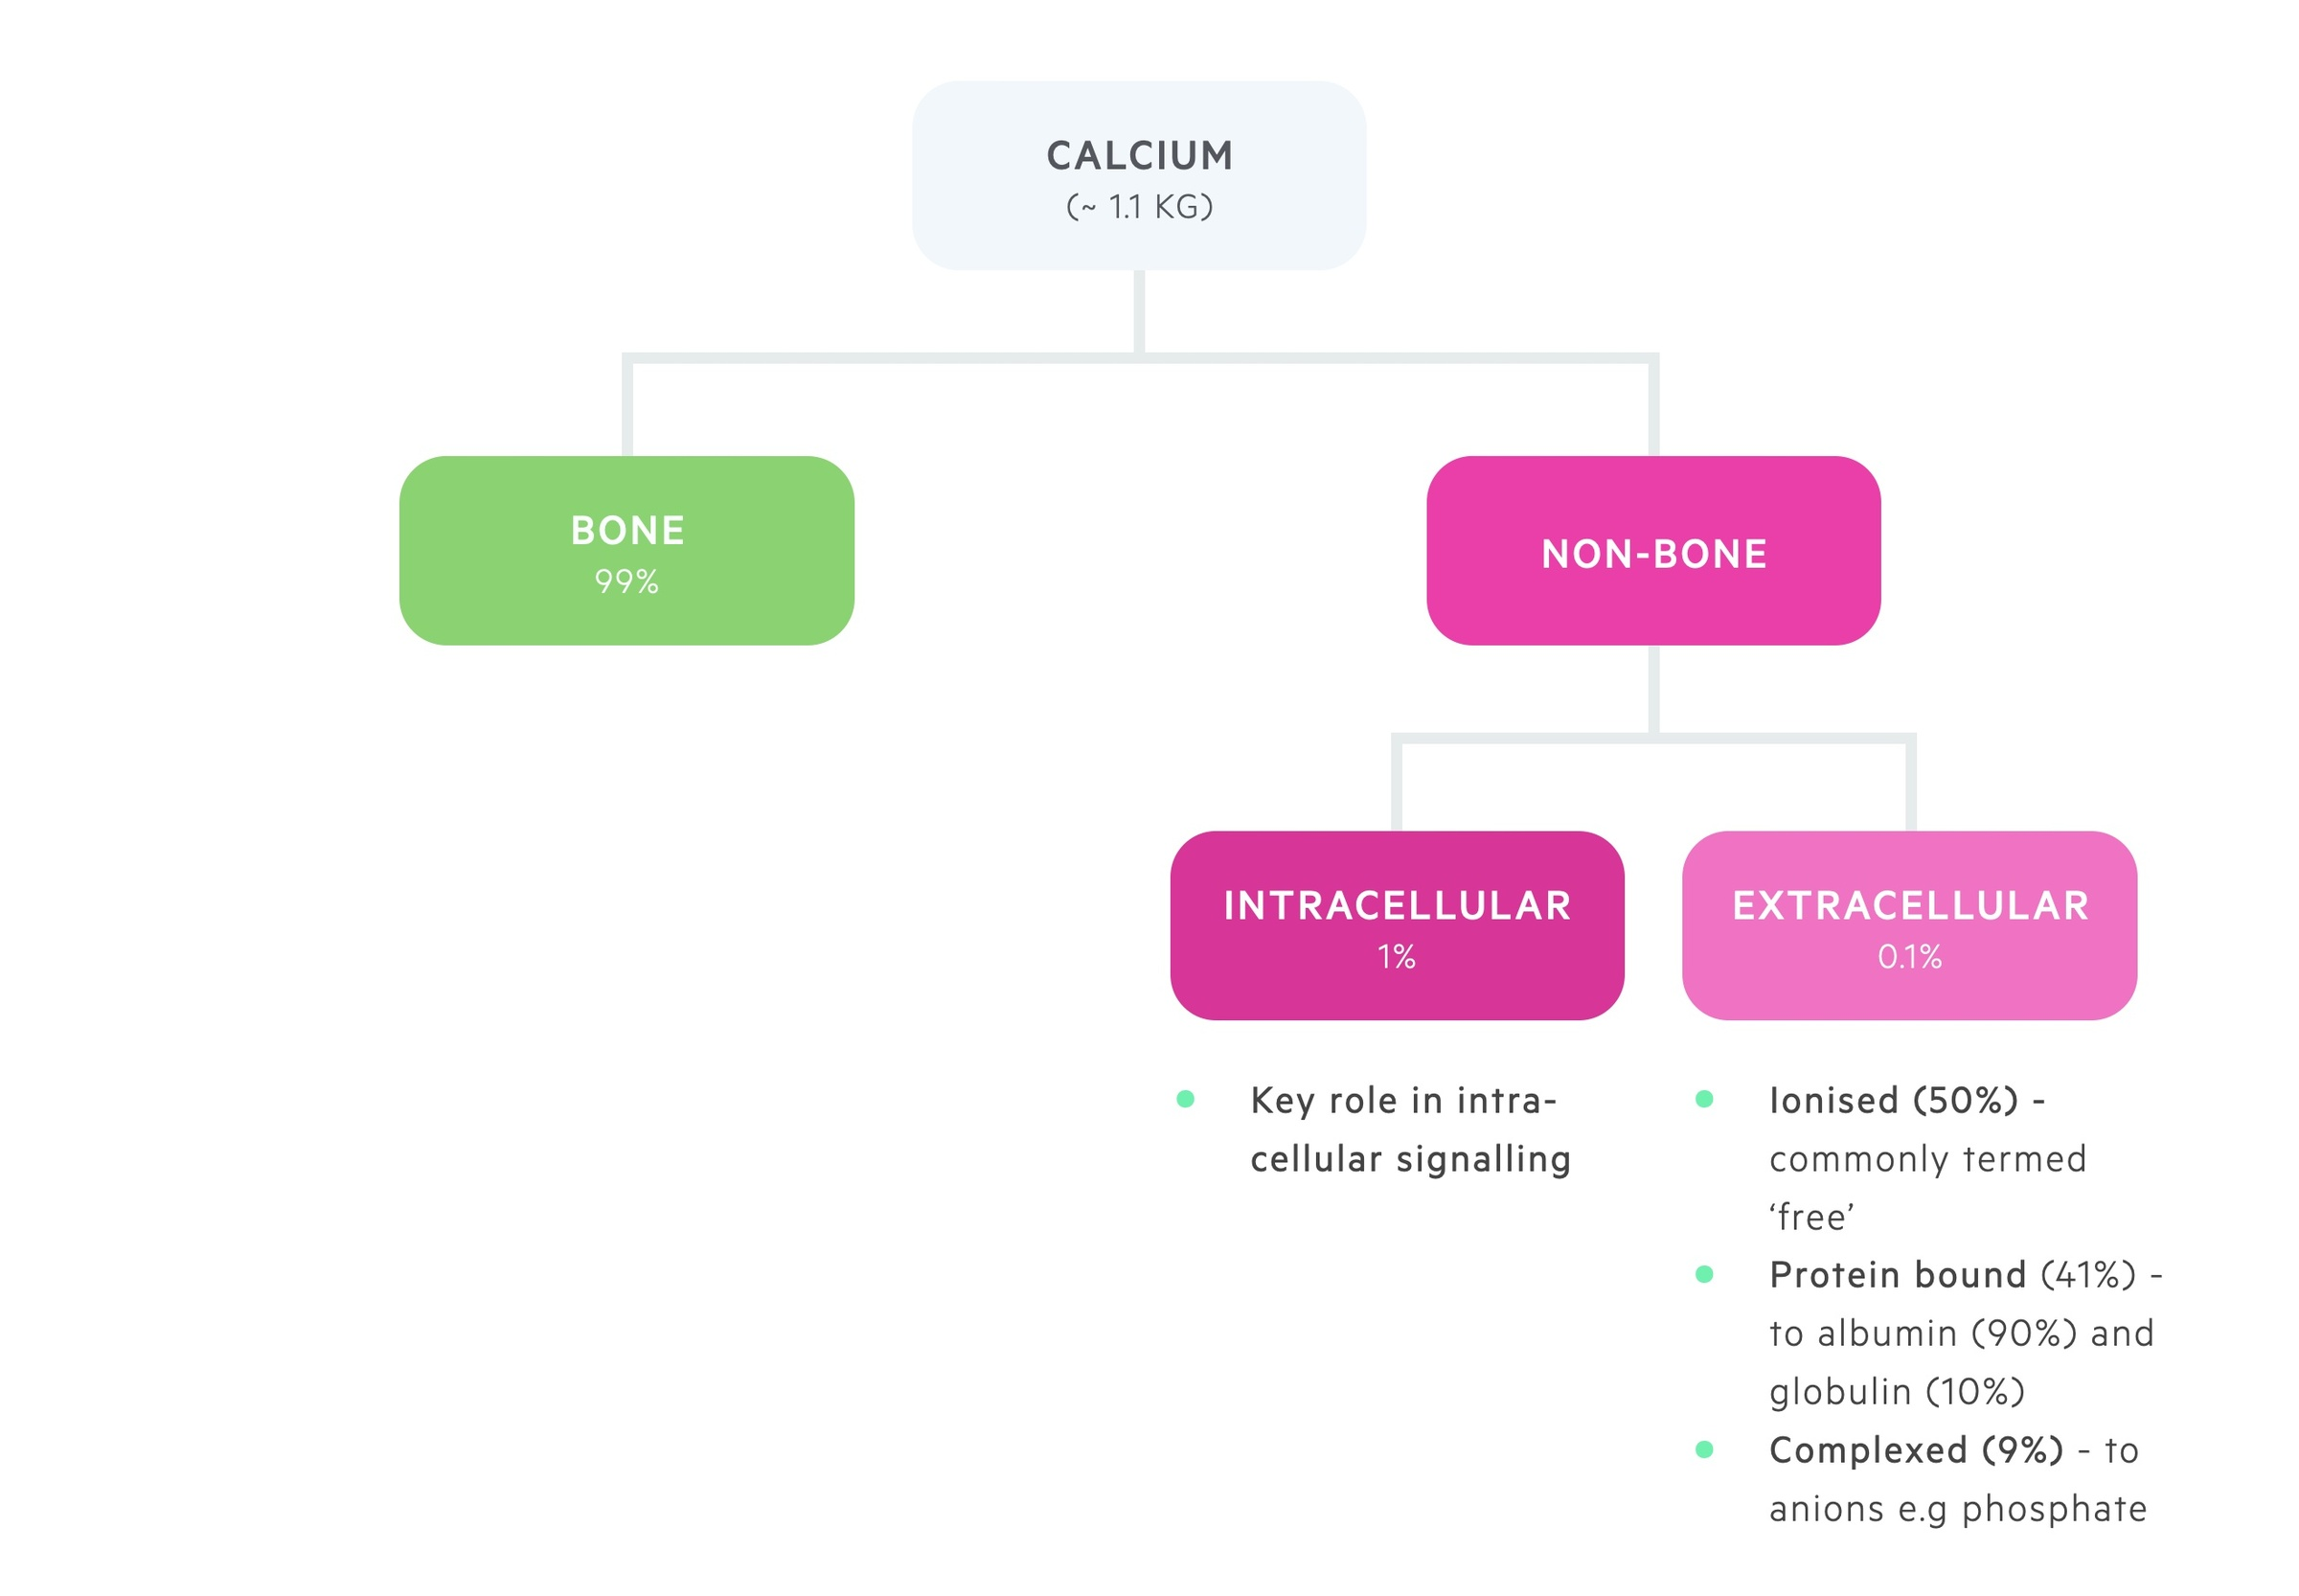 Distribution of calcium in the body